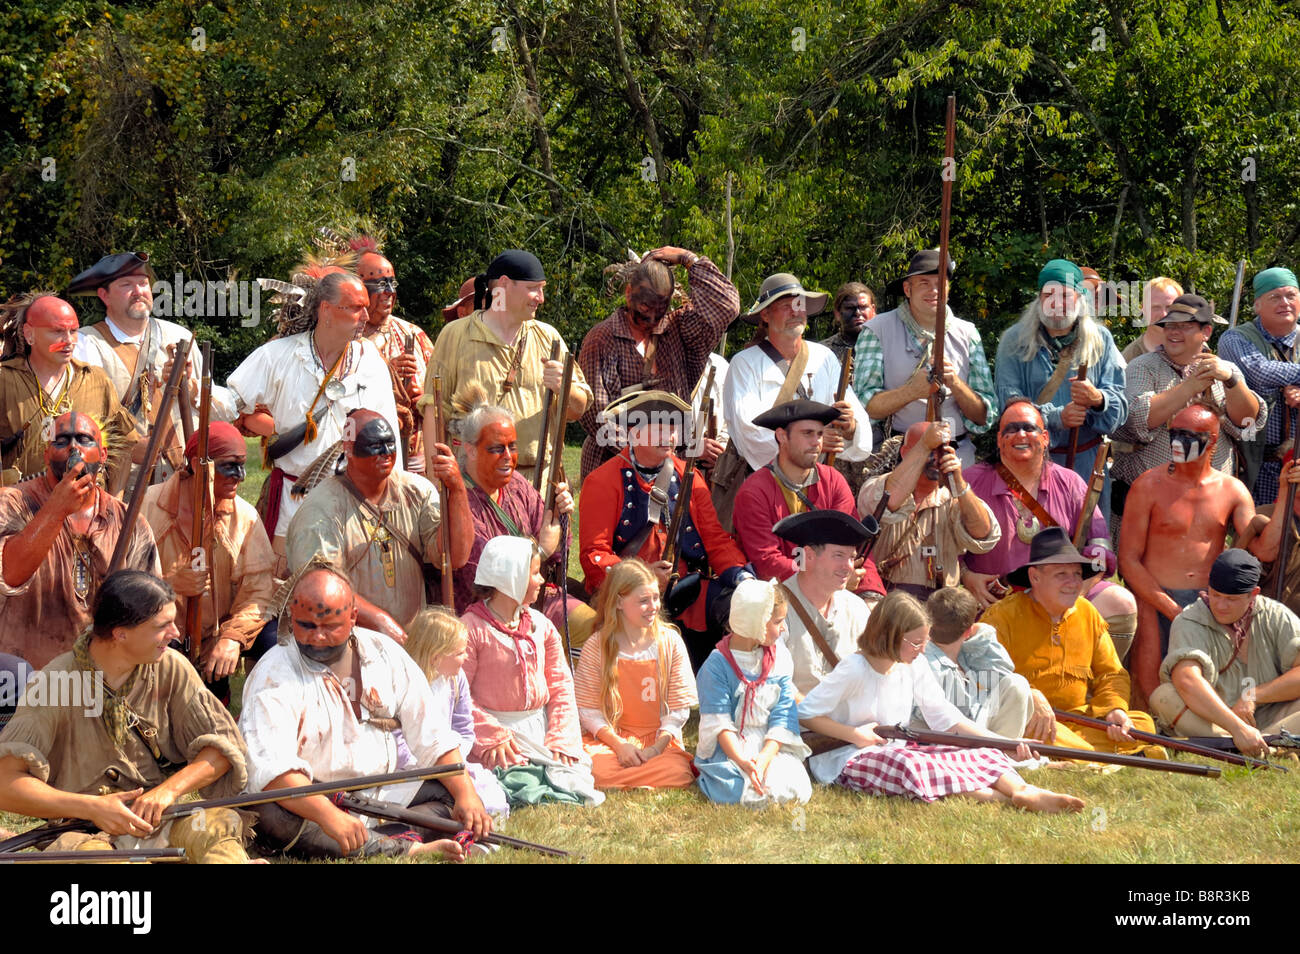 Native American Indian and pioneer reenactors posing for group photo at Fort Boonesborough Kentucky USA - Stock Image